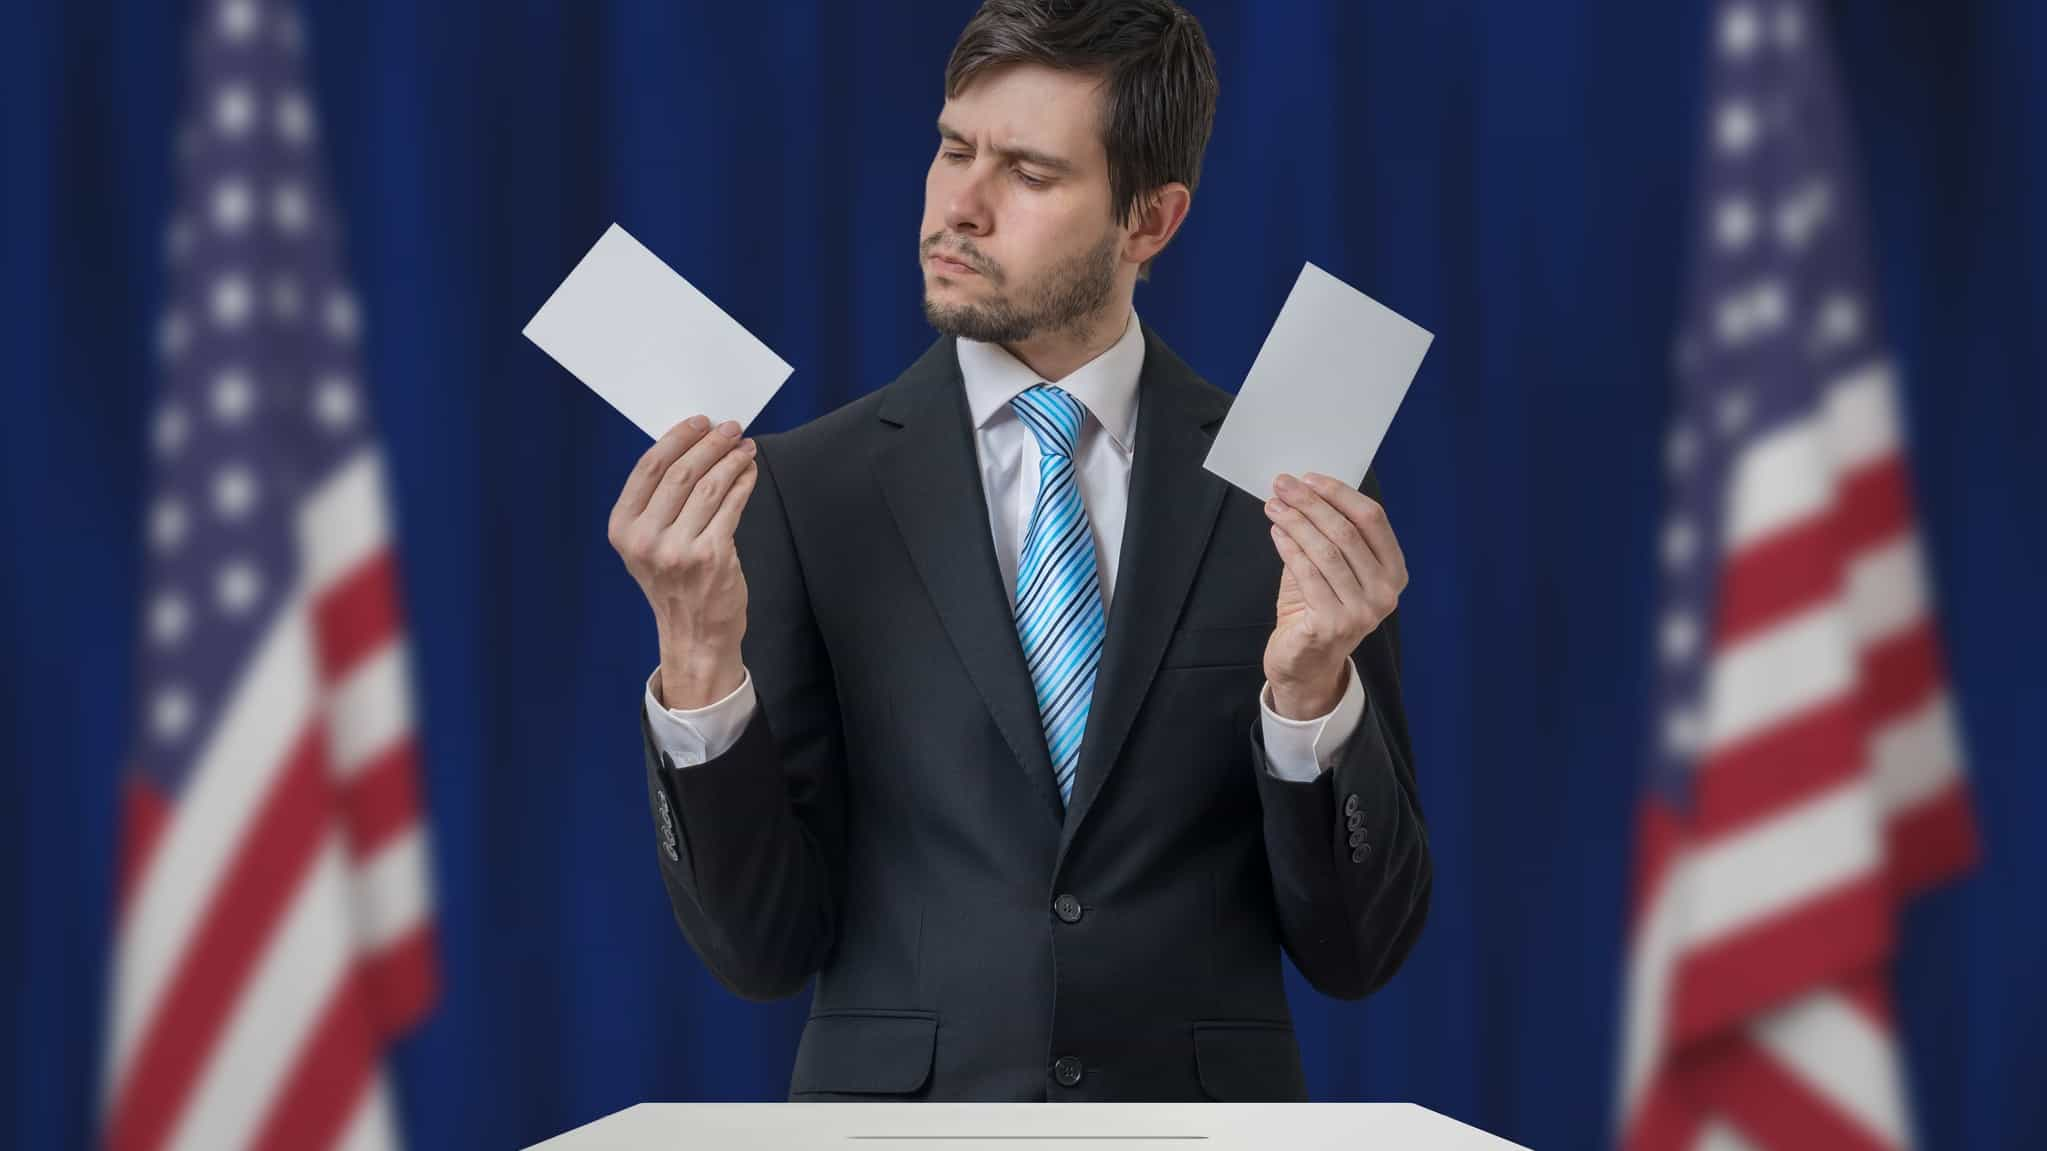 which shares to buy for US election represented by voter looking confused holding card in each hand